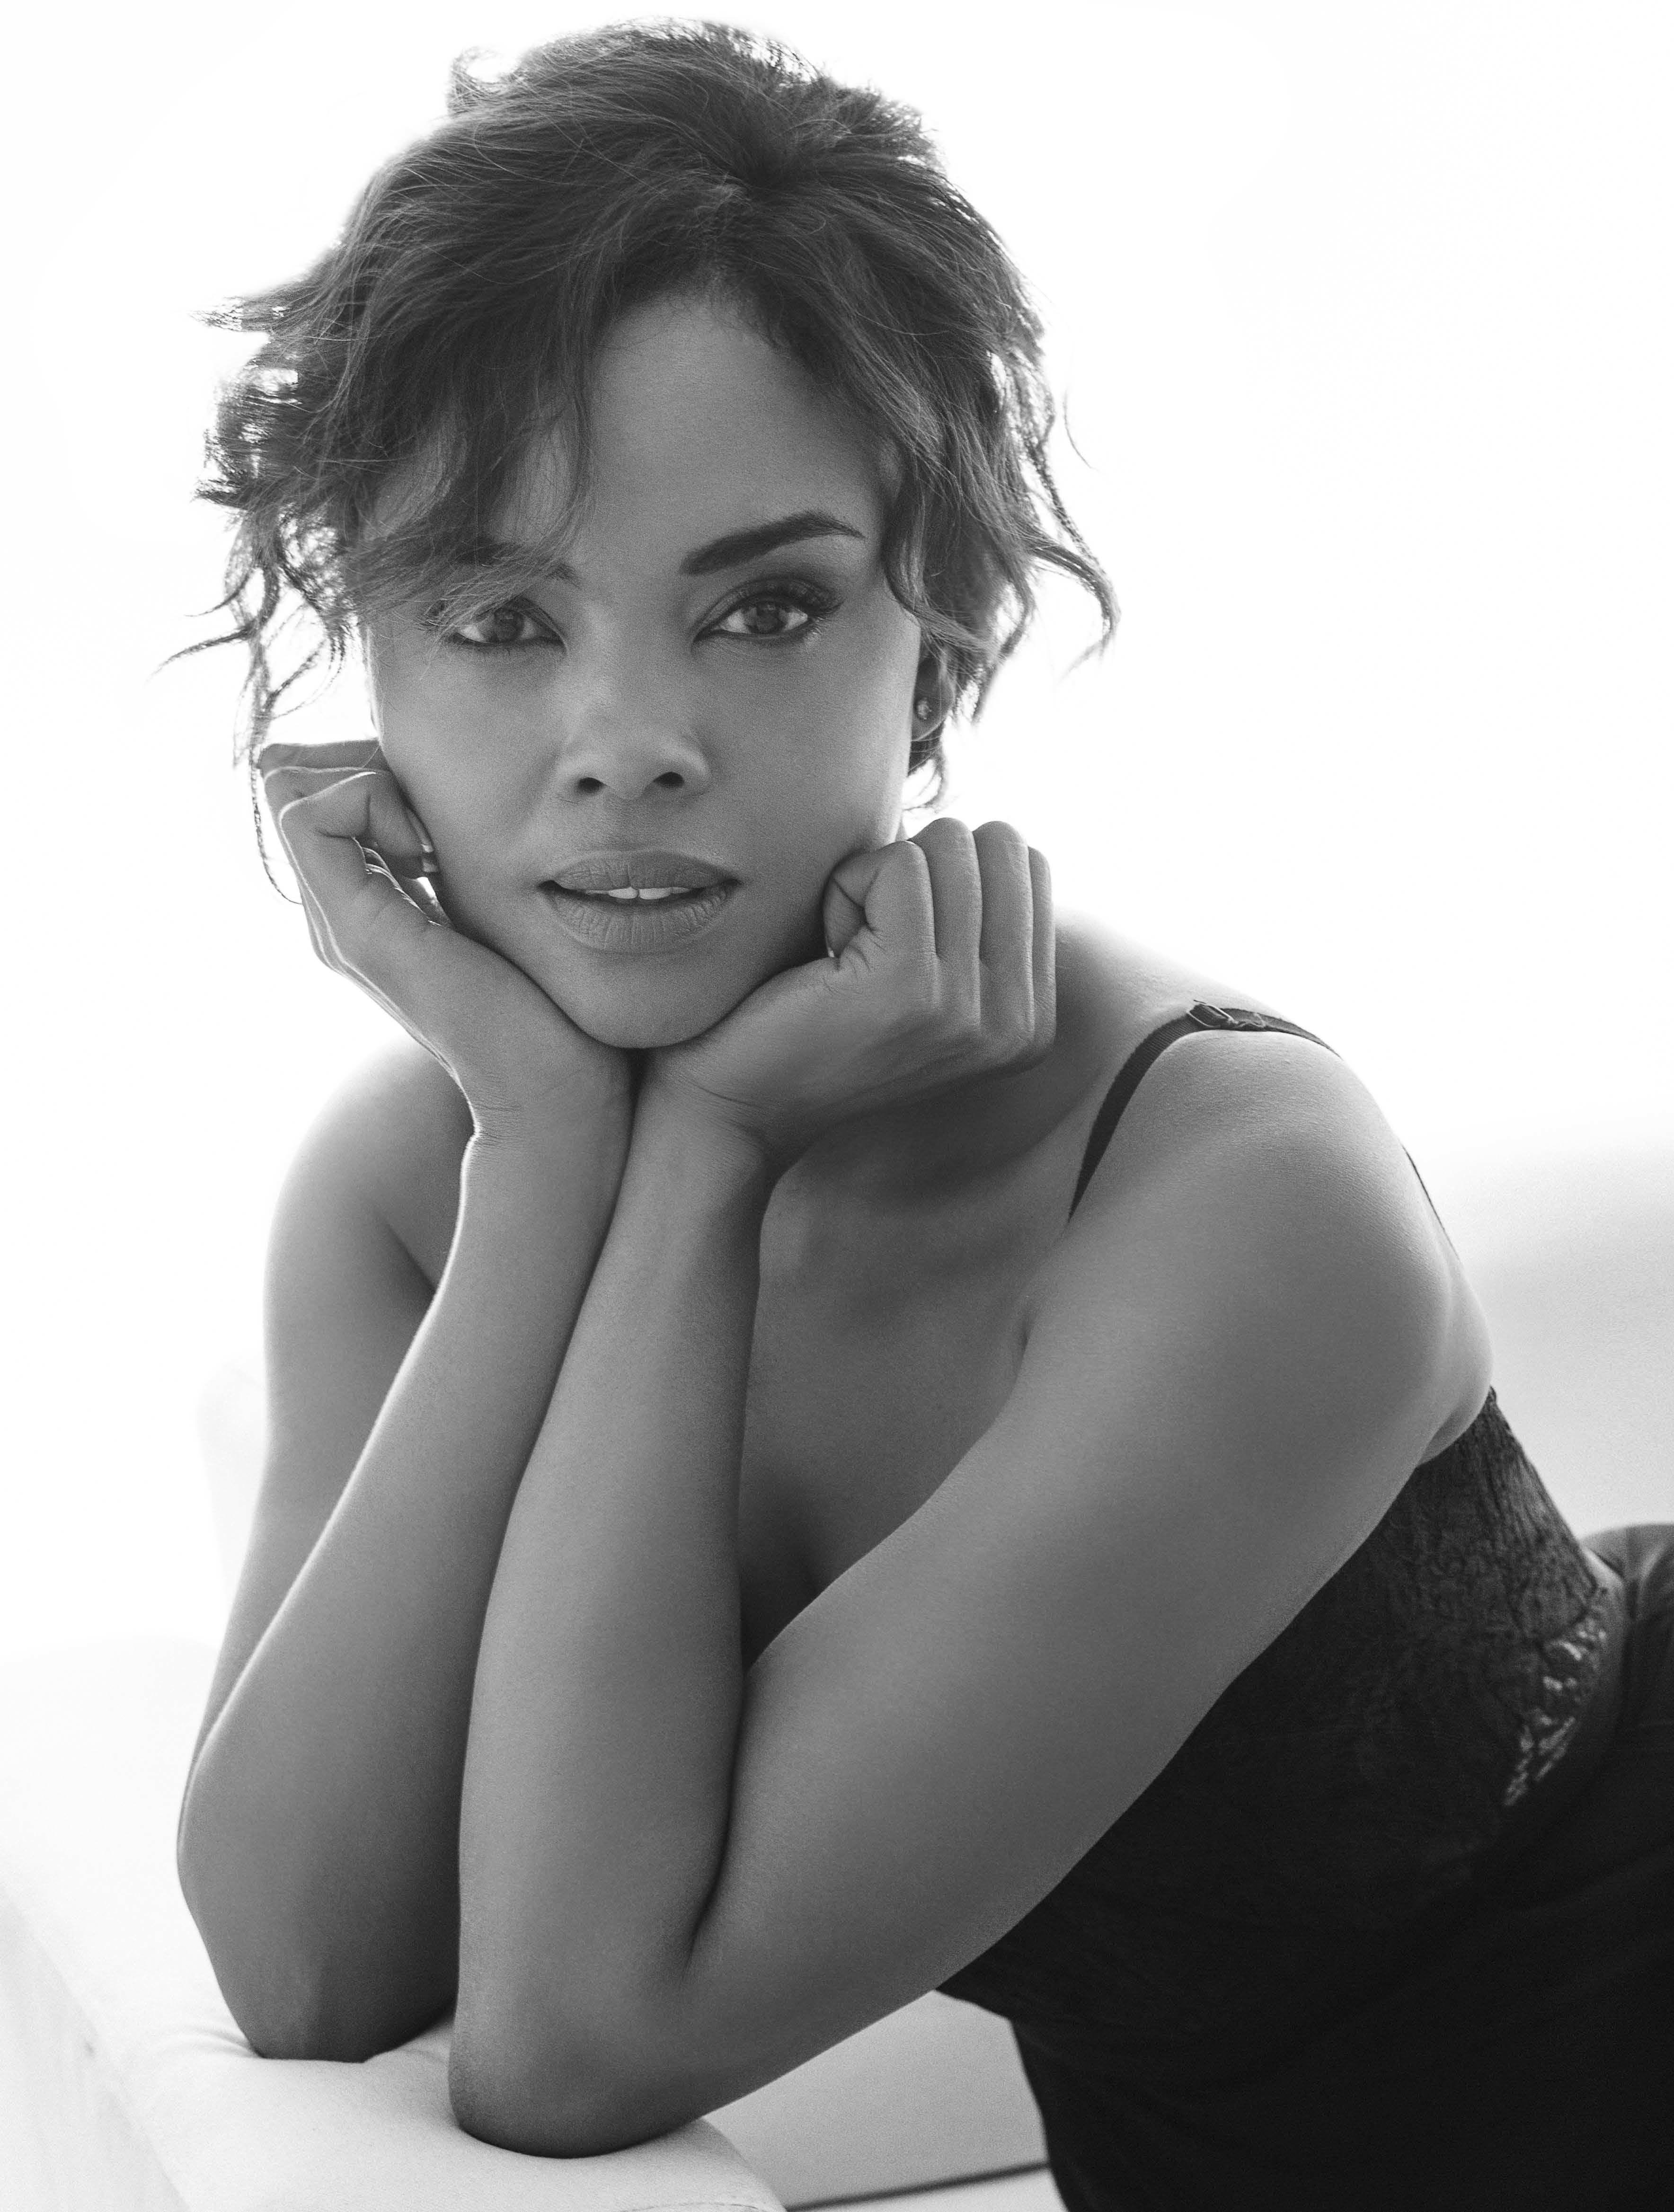 sharon leal filmlerisharon leal husband, sharon leal movies, sharon leal comfort me, sharon leal and william levy, sharon leal filmleri, sharon leal film, sharon leal instagram, sharon leal, sharon leal imdb, sharon leal giant, sharon leal wikipedia, sharon leal son, sharon leal net worth, sharon leal biography, sharon leal parents, sharon leal ethnicity